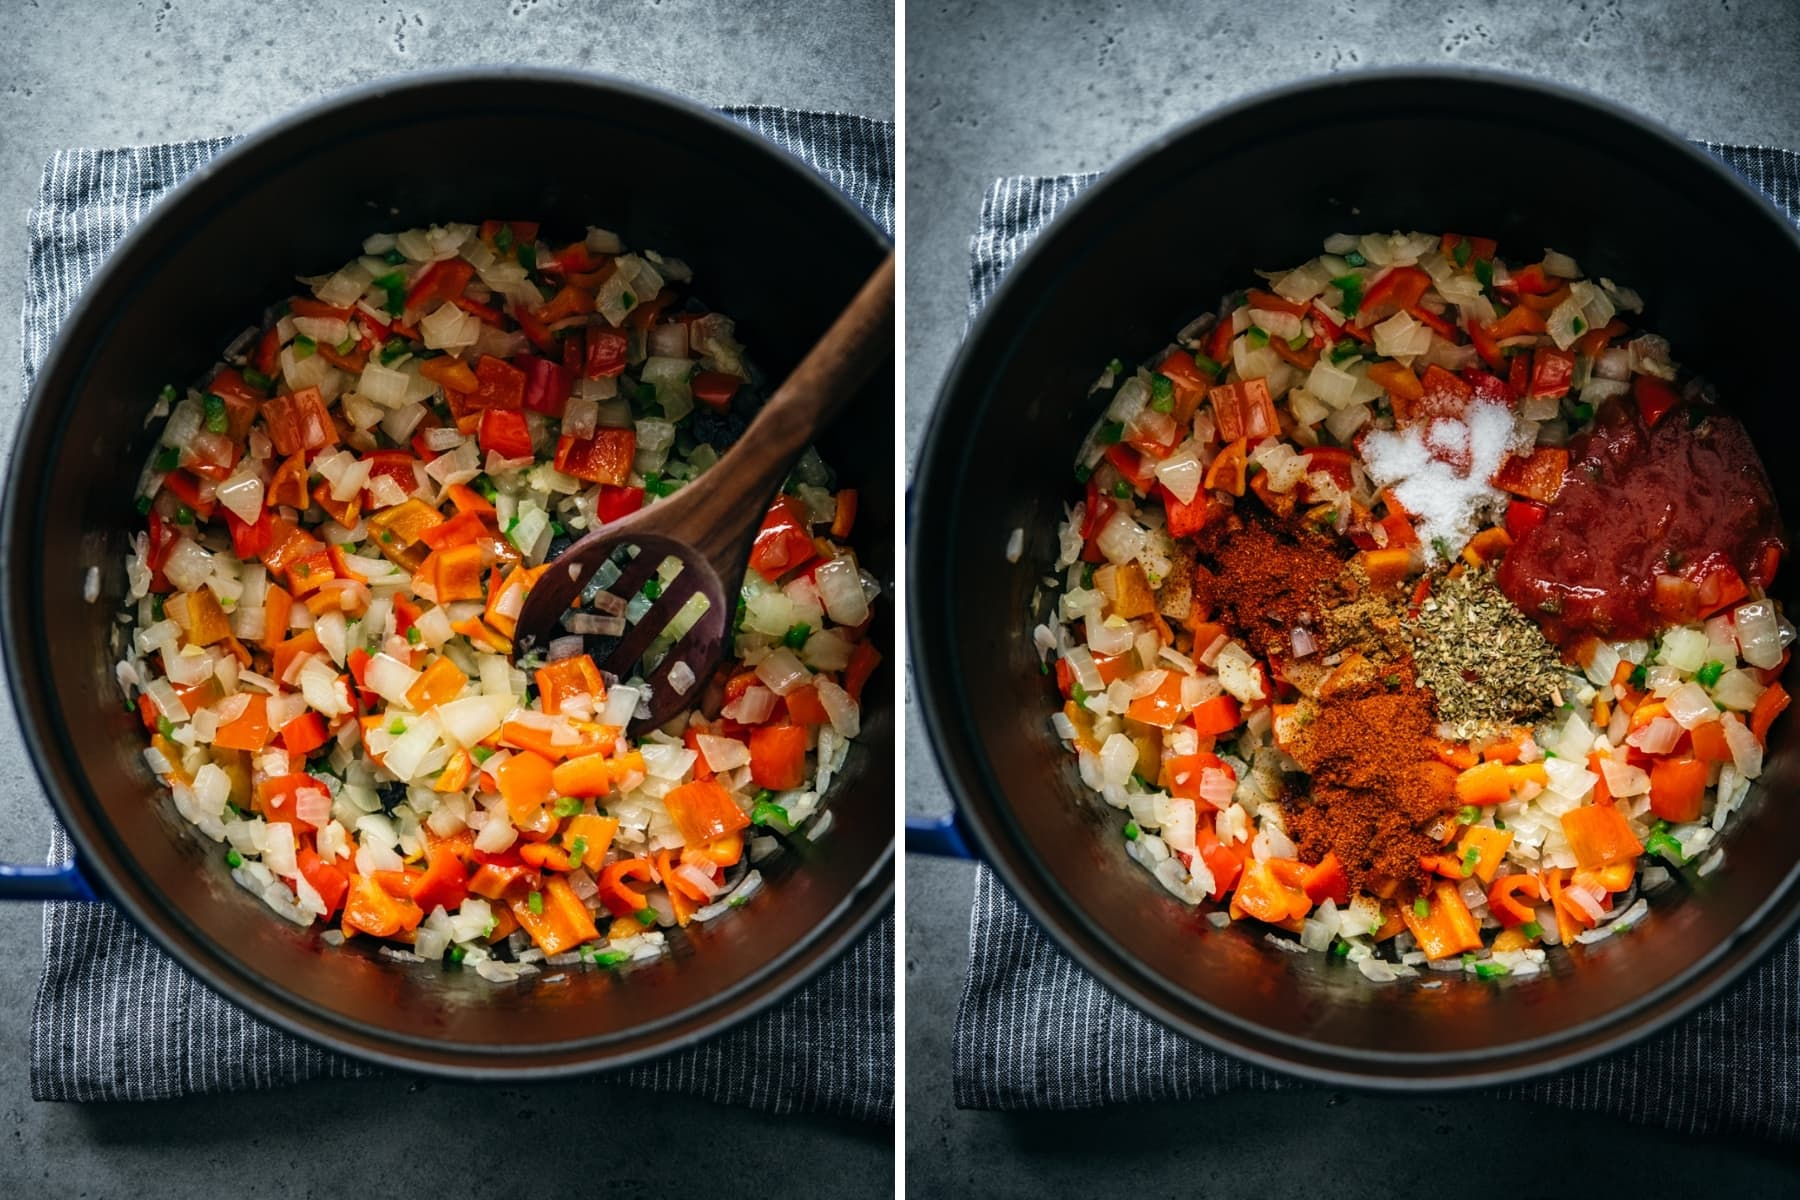 before and after adding spices to sautéed onion, jalapeno and bell pepper in large soup pot.